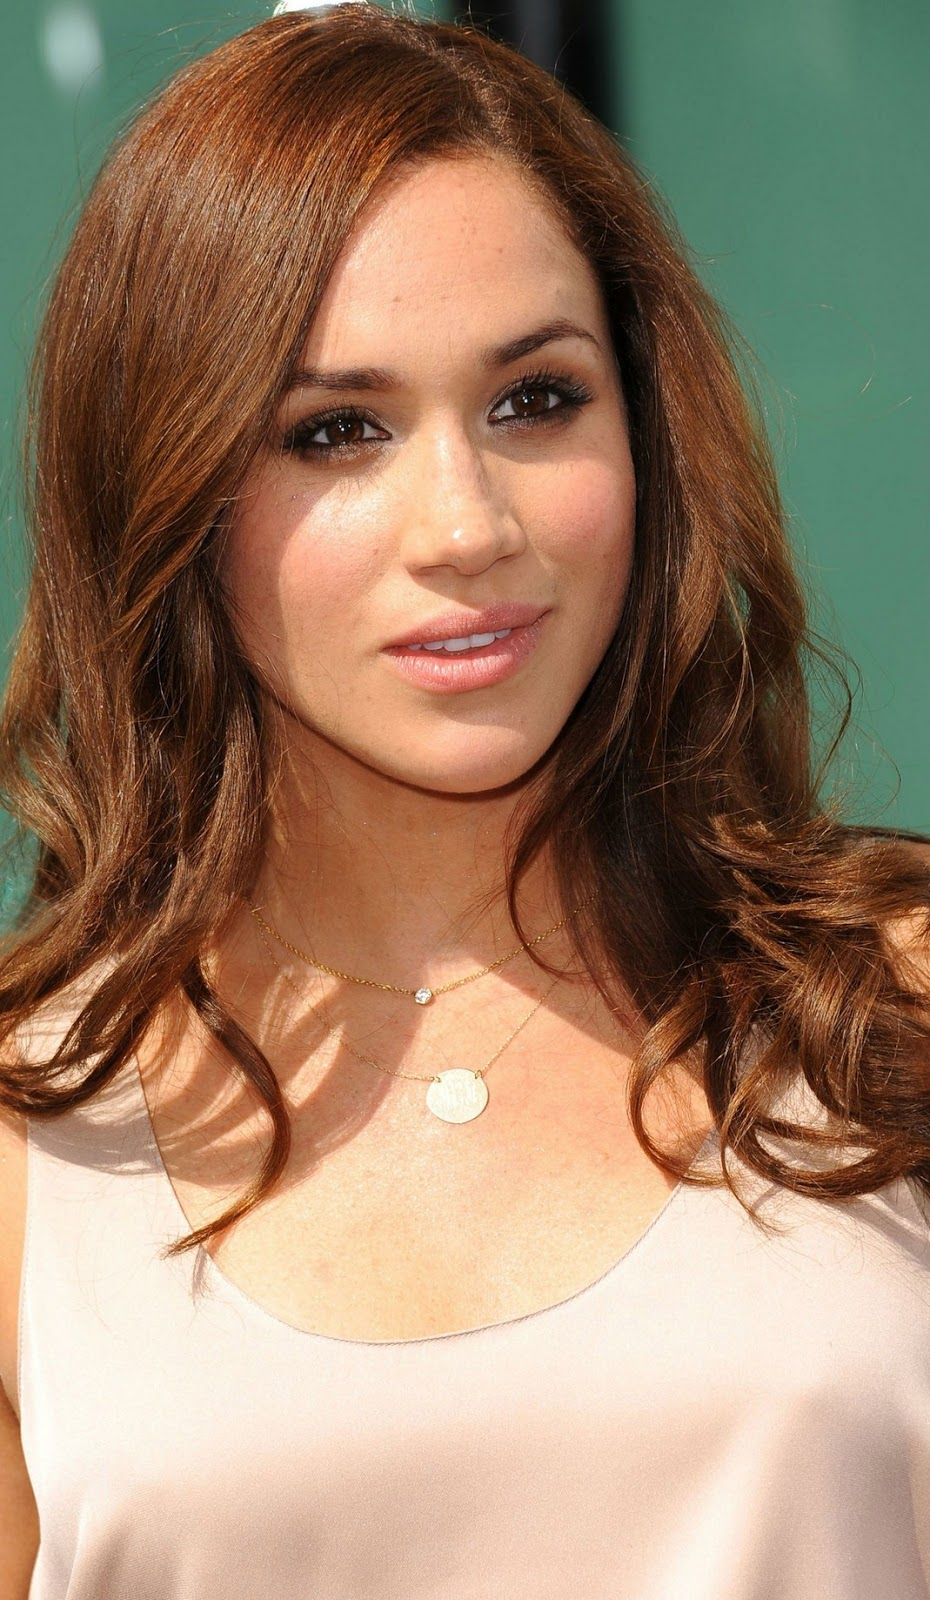 Meghan Markle Photos >> The Latest Celebrity Picture: Meghan Markle